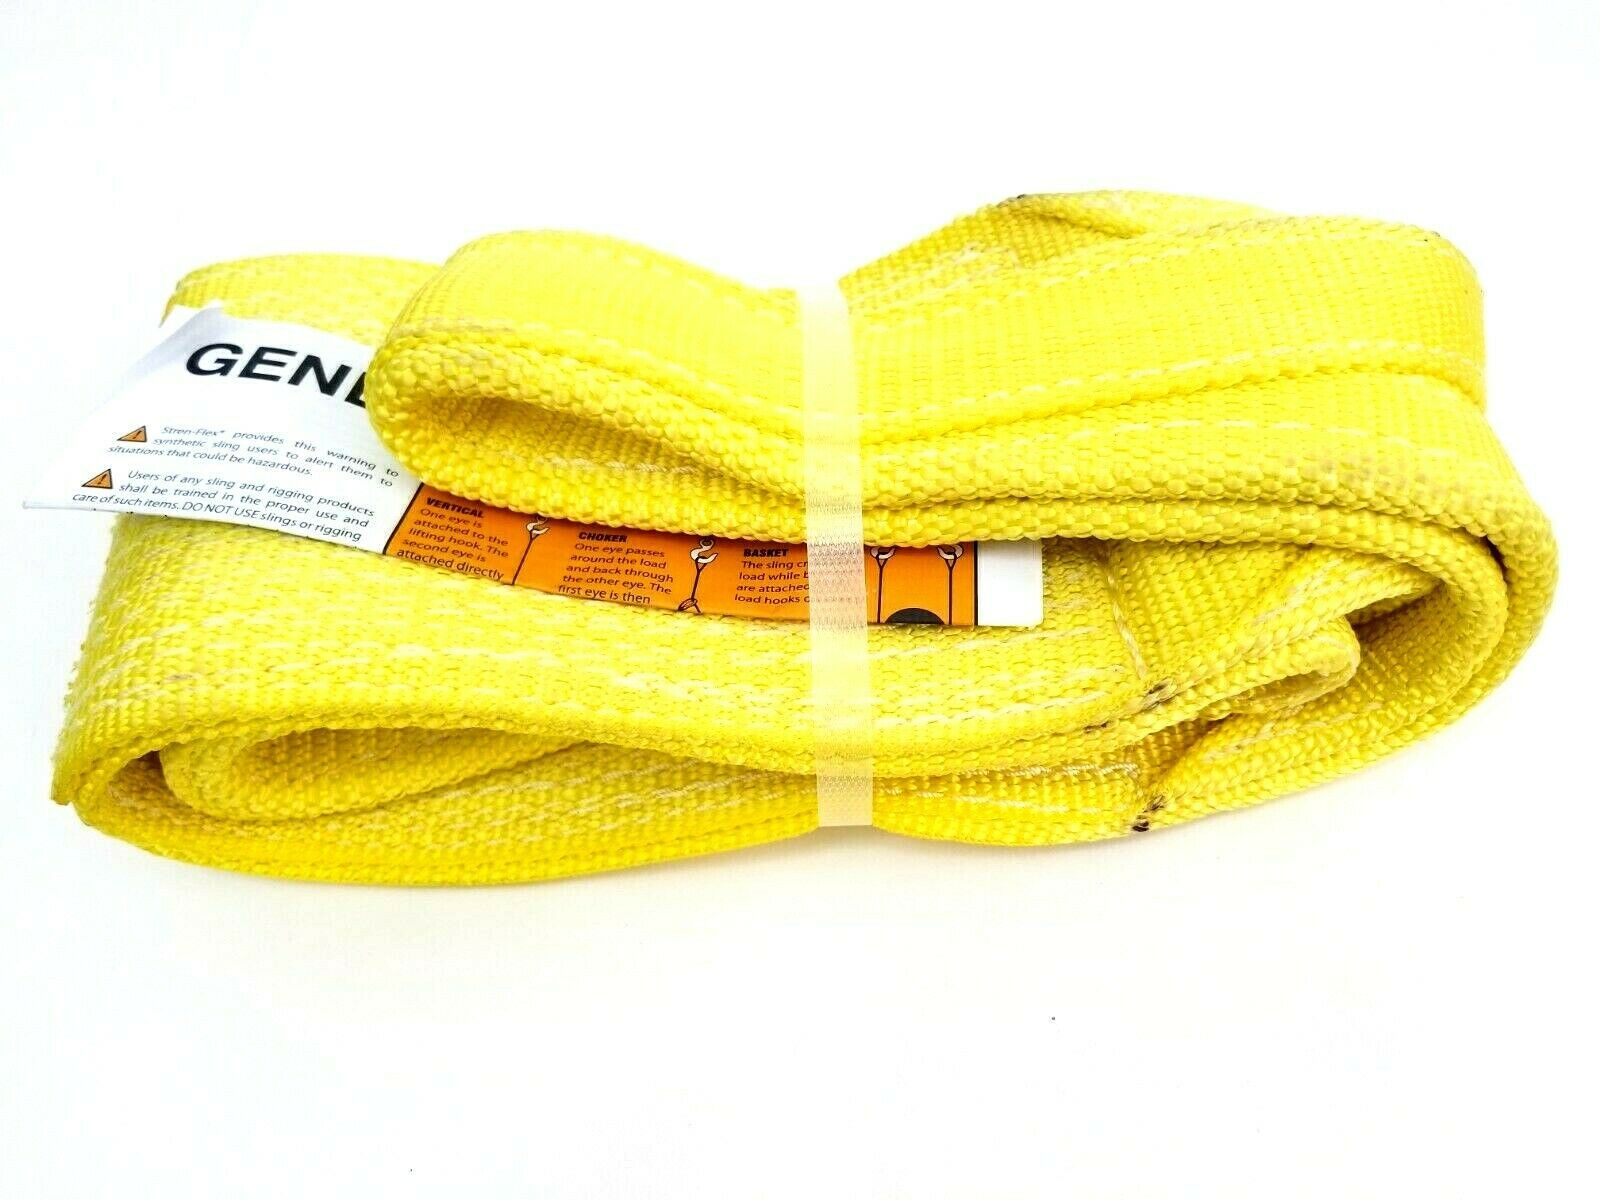 """Stren-Flex Web Sling, Recovery Strap 4' ft x 6"""" in Nylon Yellow Made in USA New image 3"""